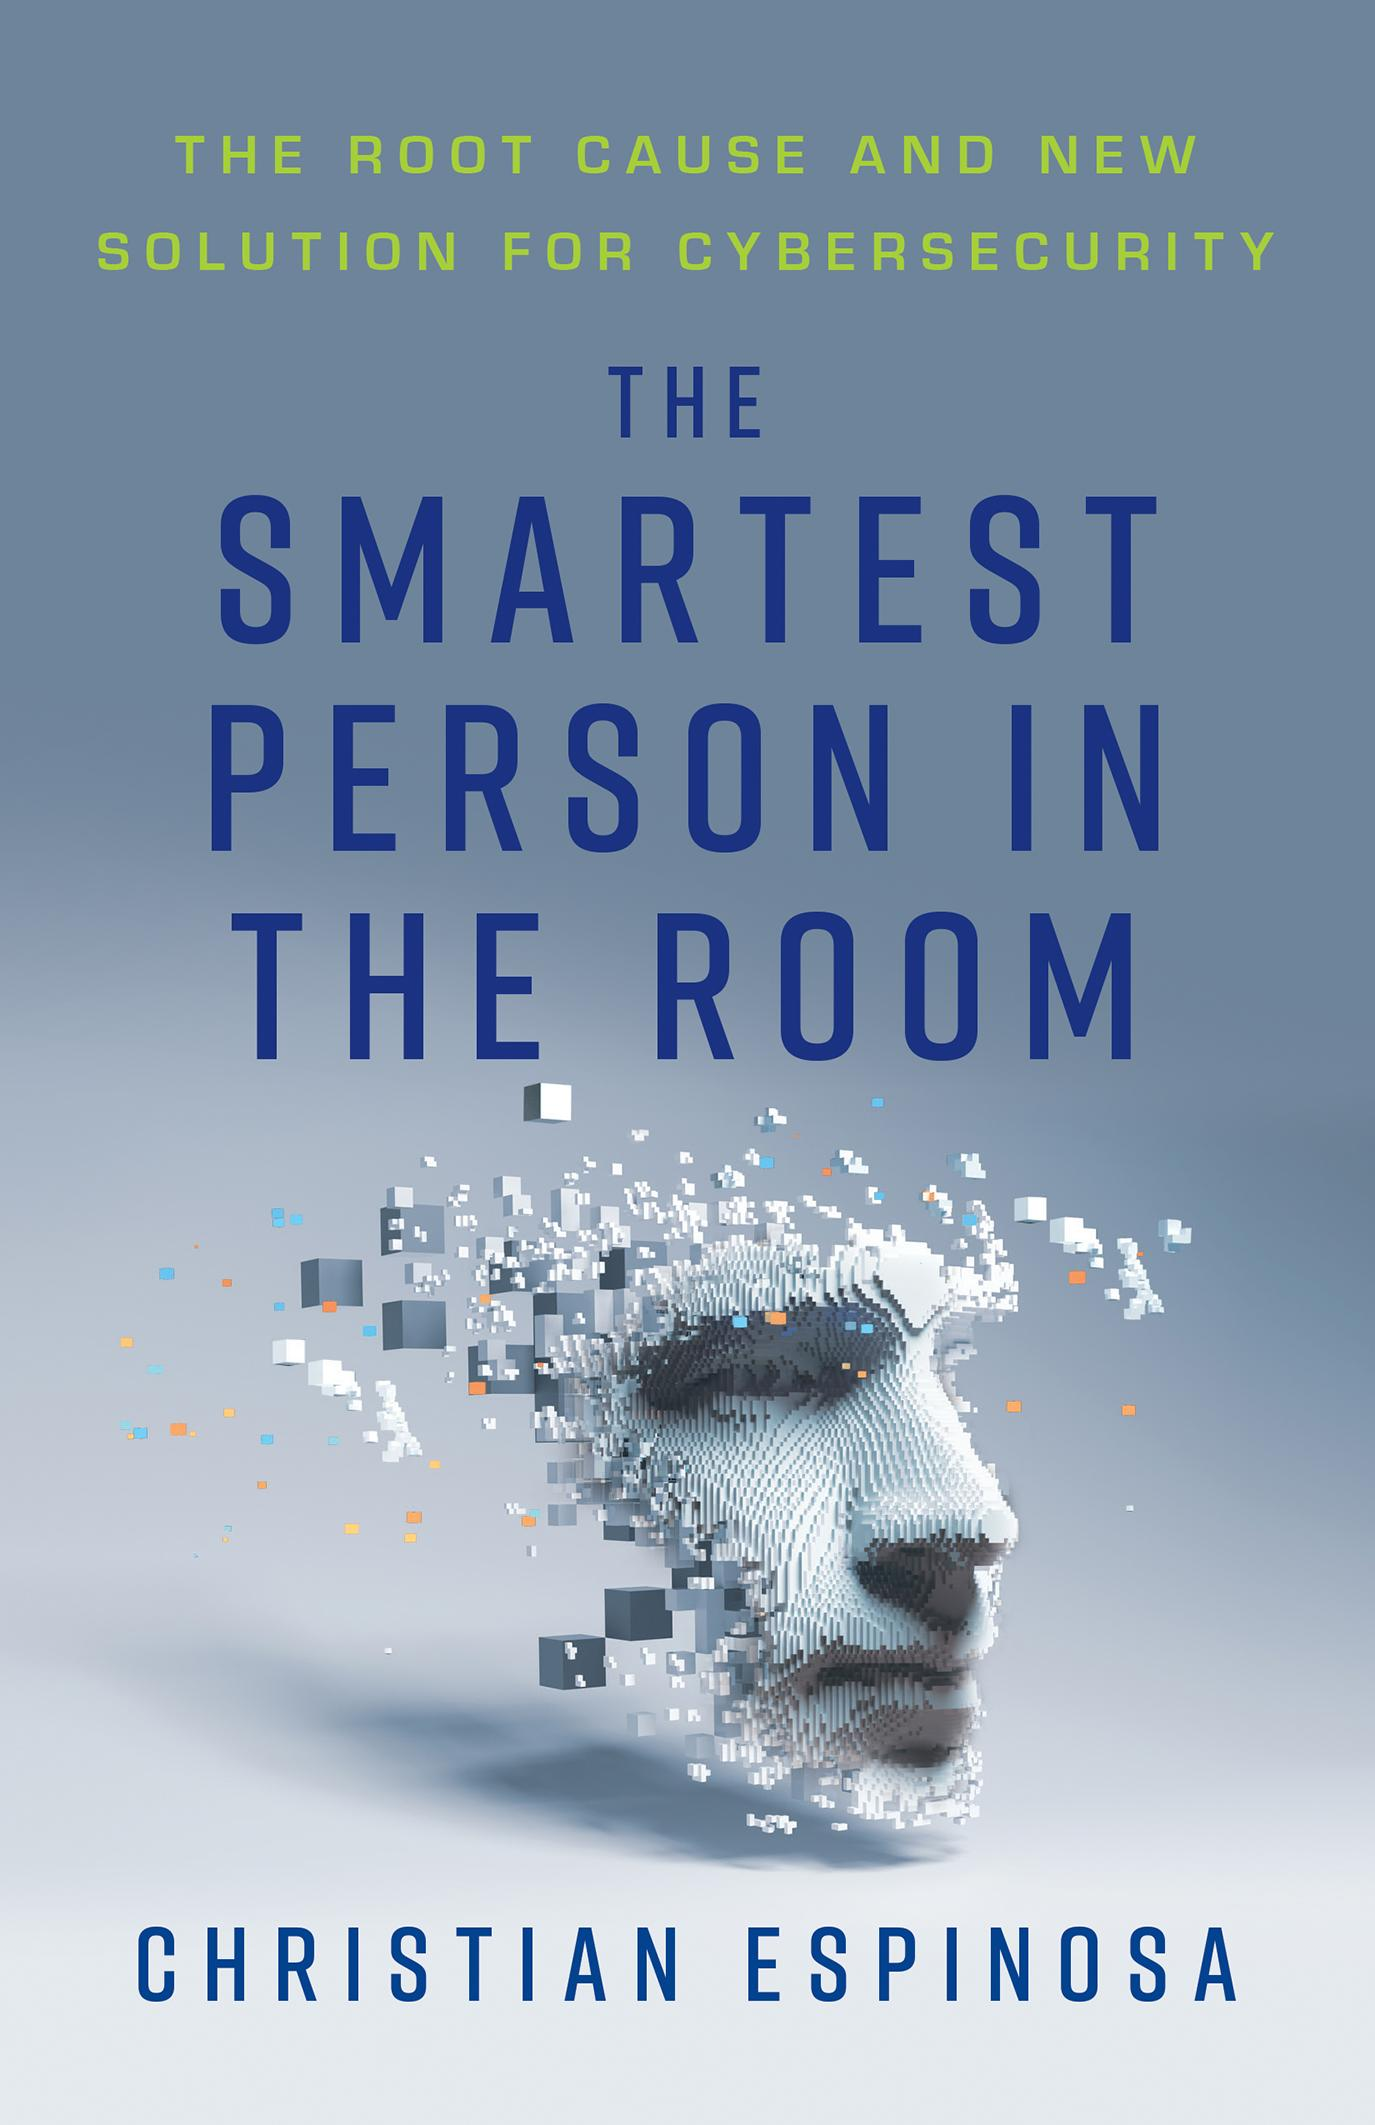 The Smartest Person in The Room